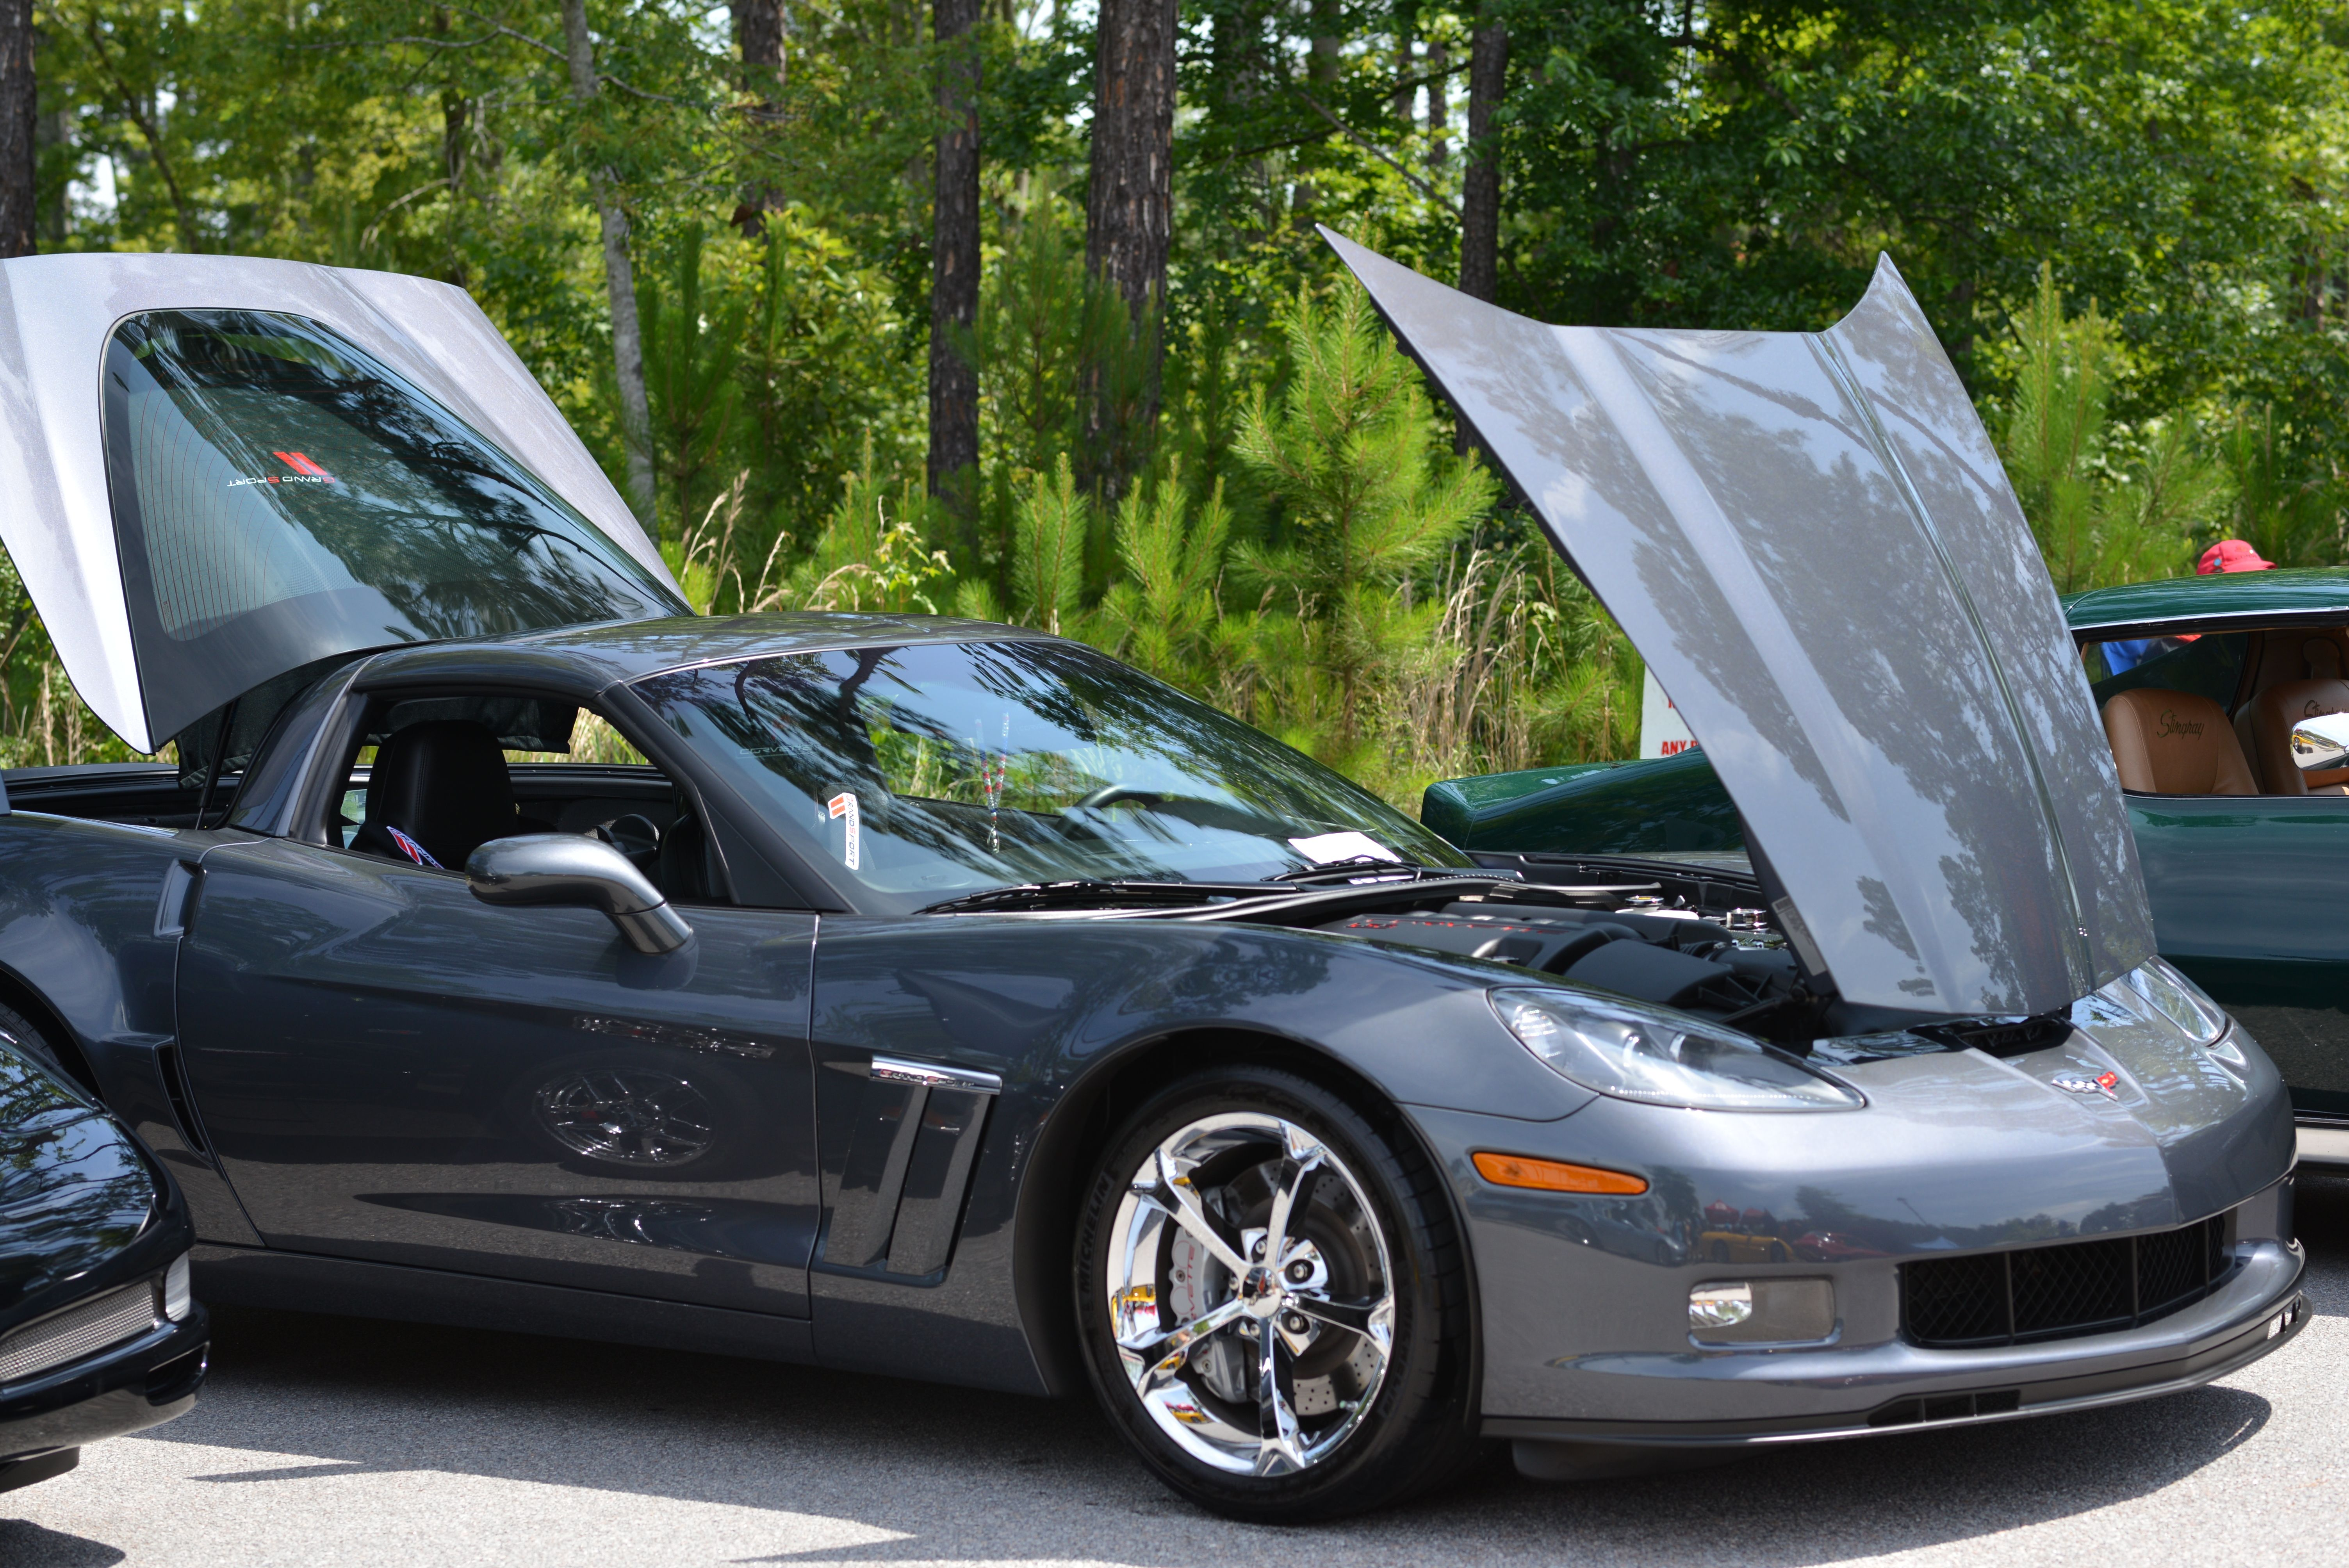 ZR1 Corvettes at Hilton Head by DJF